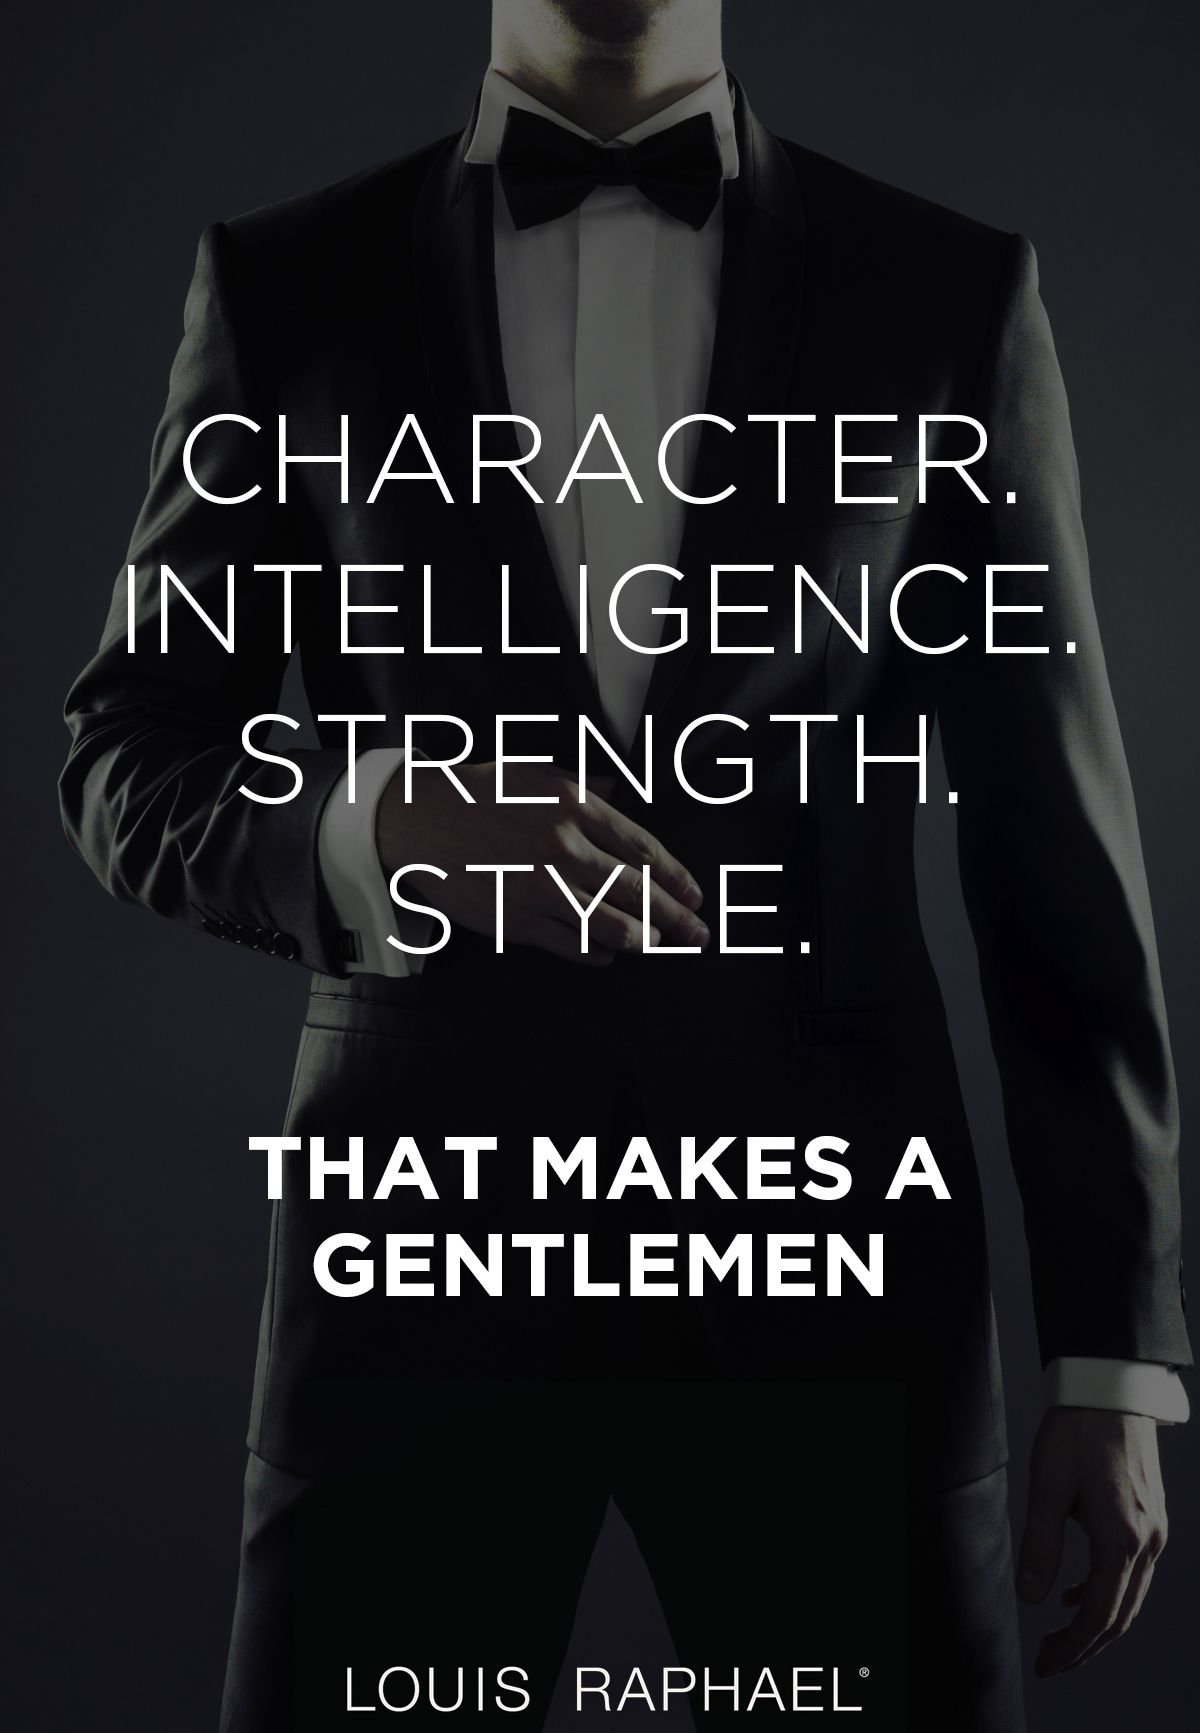 Are you a gentleman? MensStyle Quote